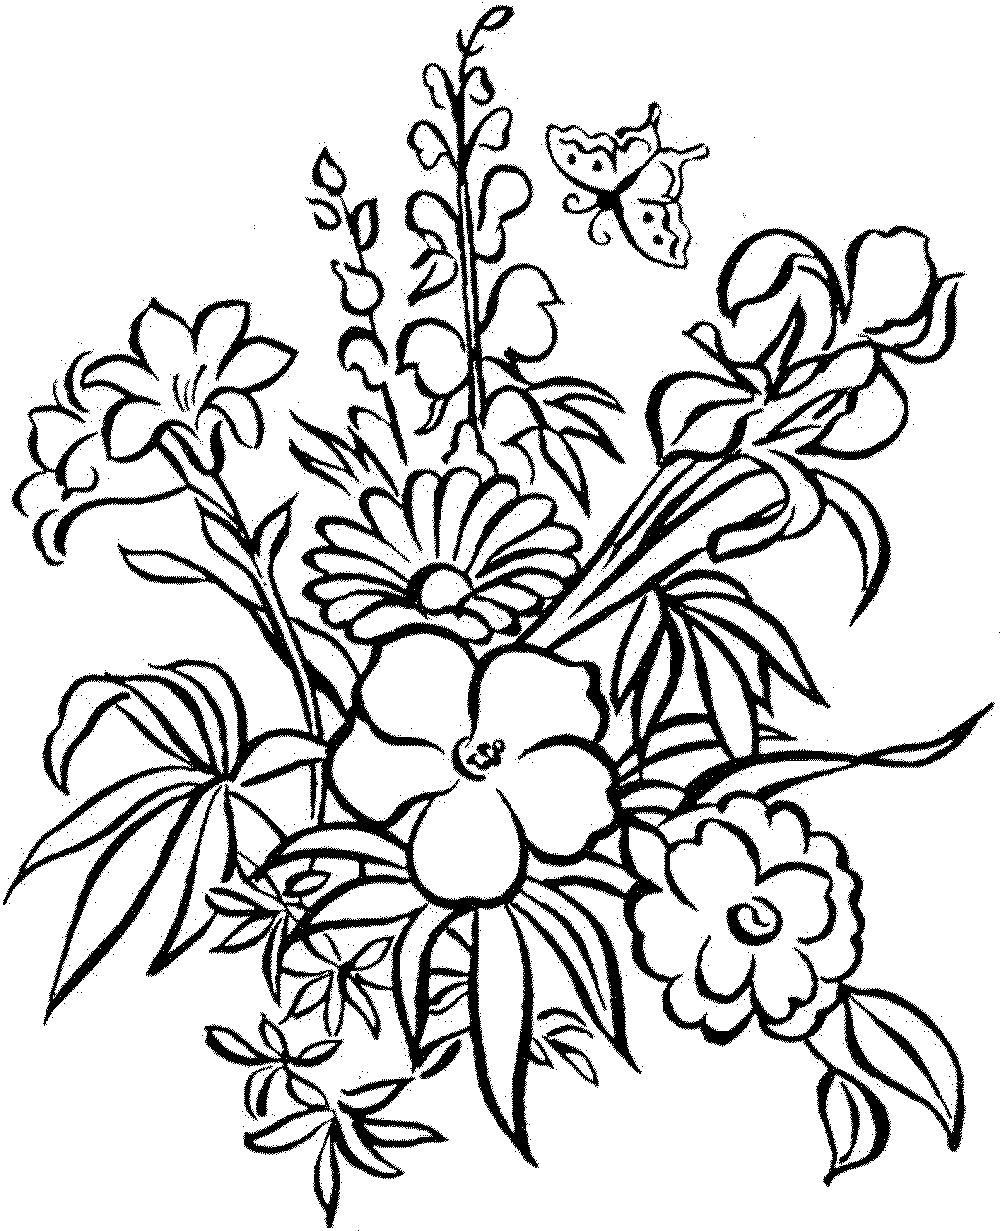 flower printable coloring sheets 10 flower coloring sheets for girls and boys all esl flower coloring sheets printable